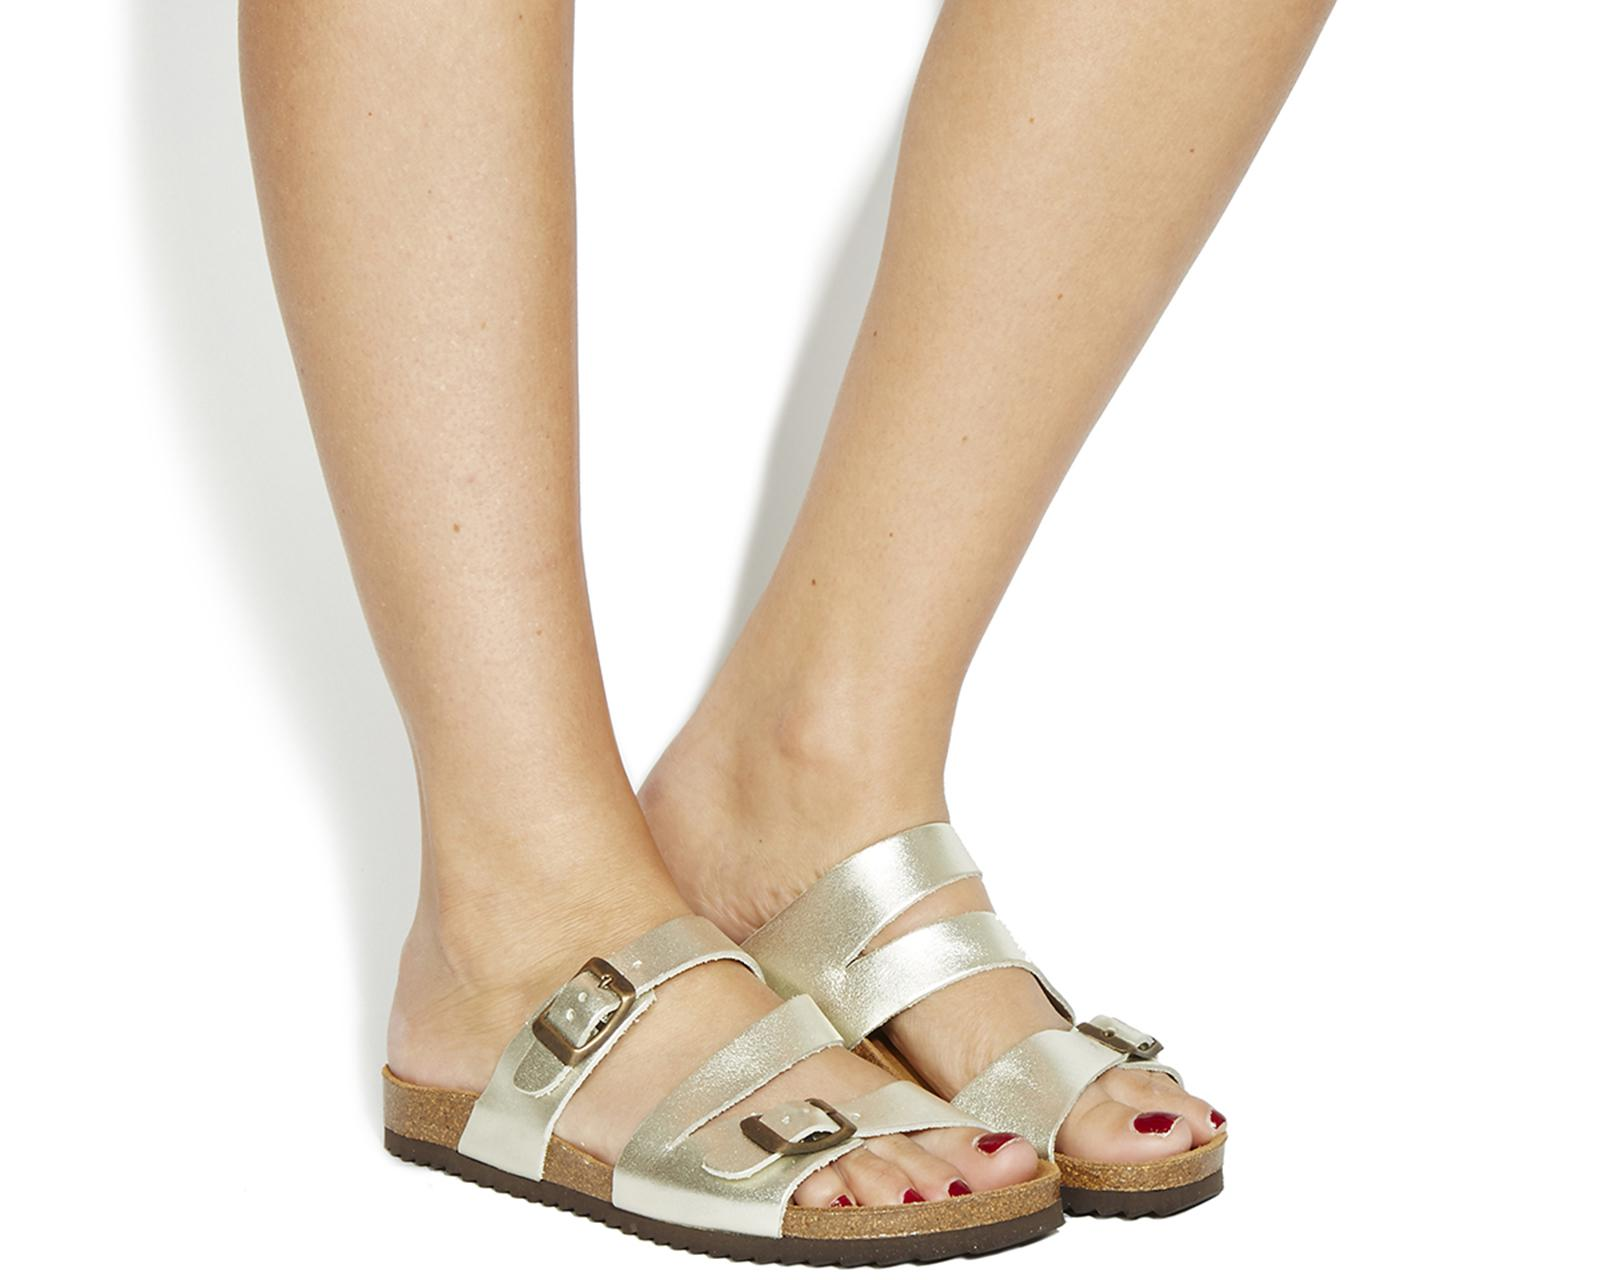 c14257faac46 Lyst - Office Bounty Cross Strap Footbed in Metallic